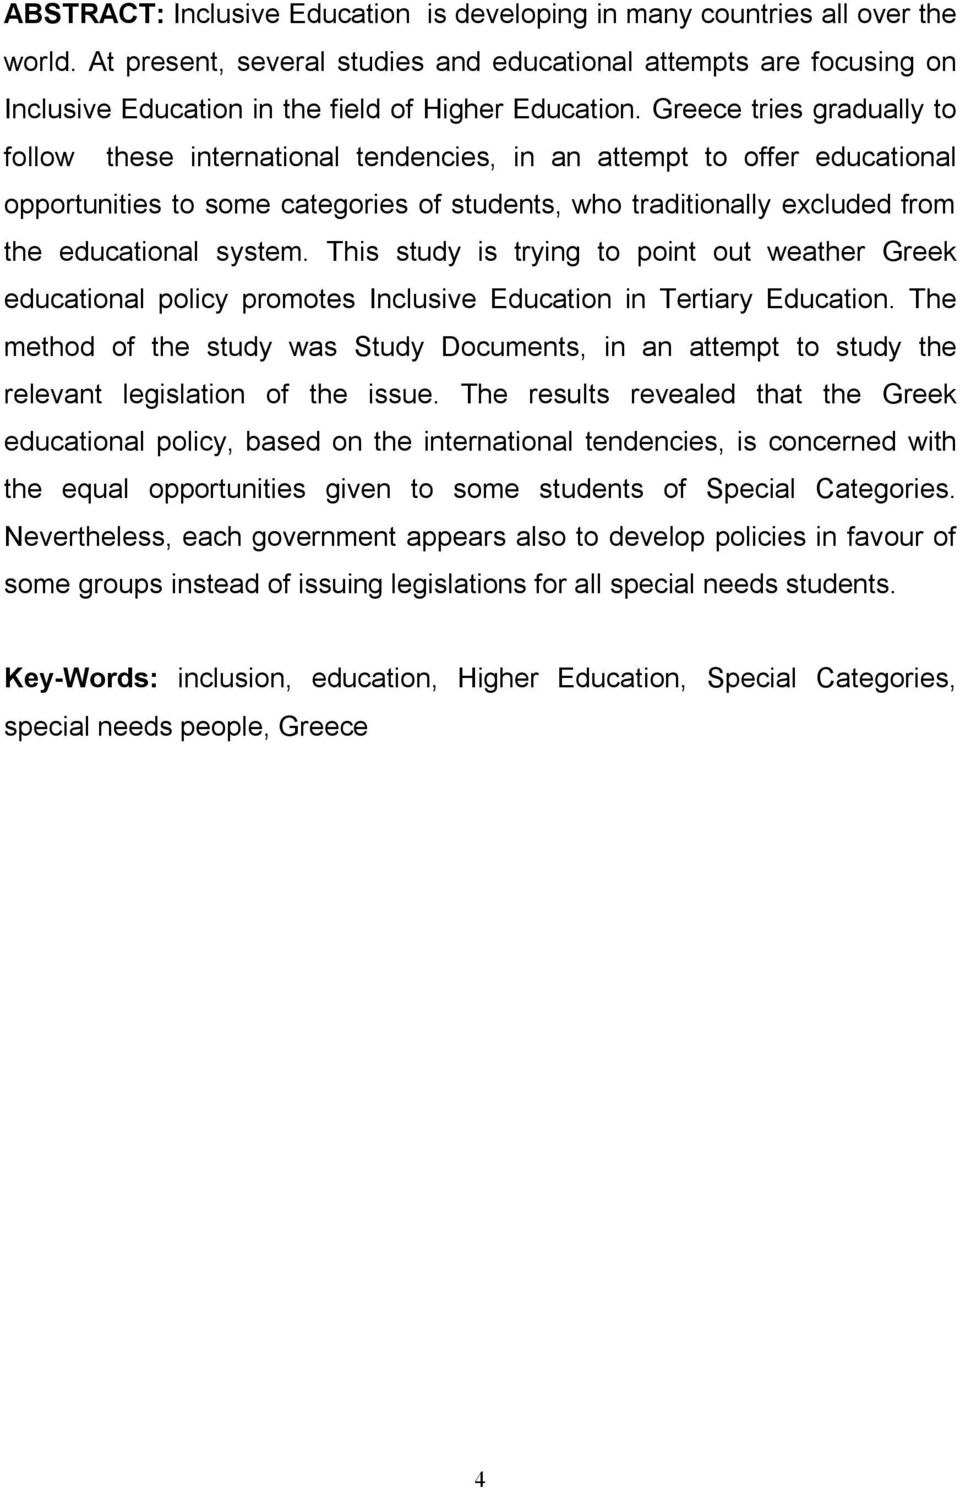 Greece tries gradually to follow these international tendencies, in an attempt to offer educational opportunities to some categories of students, who traditionally excluded from the educational